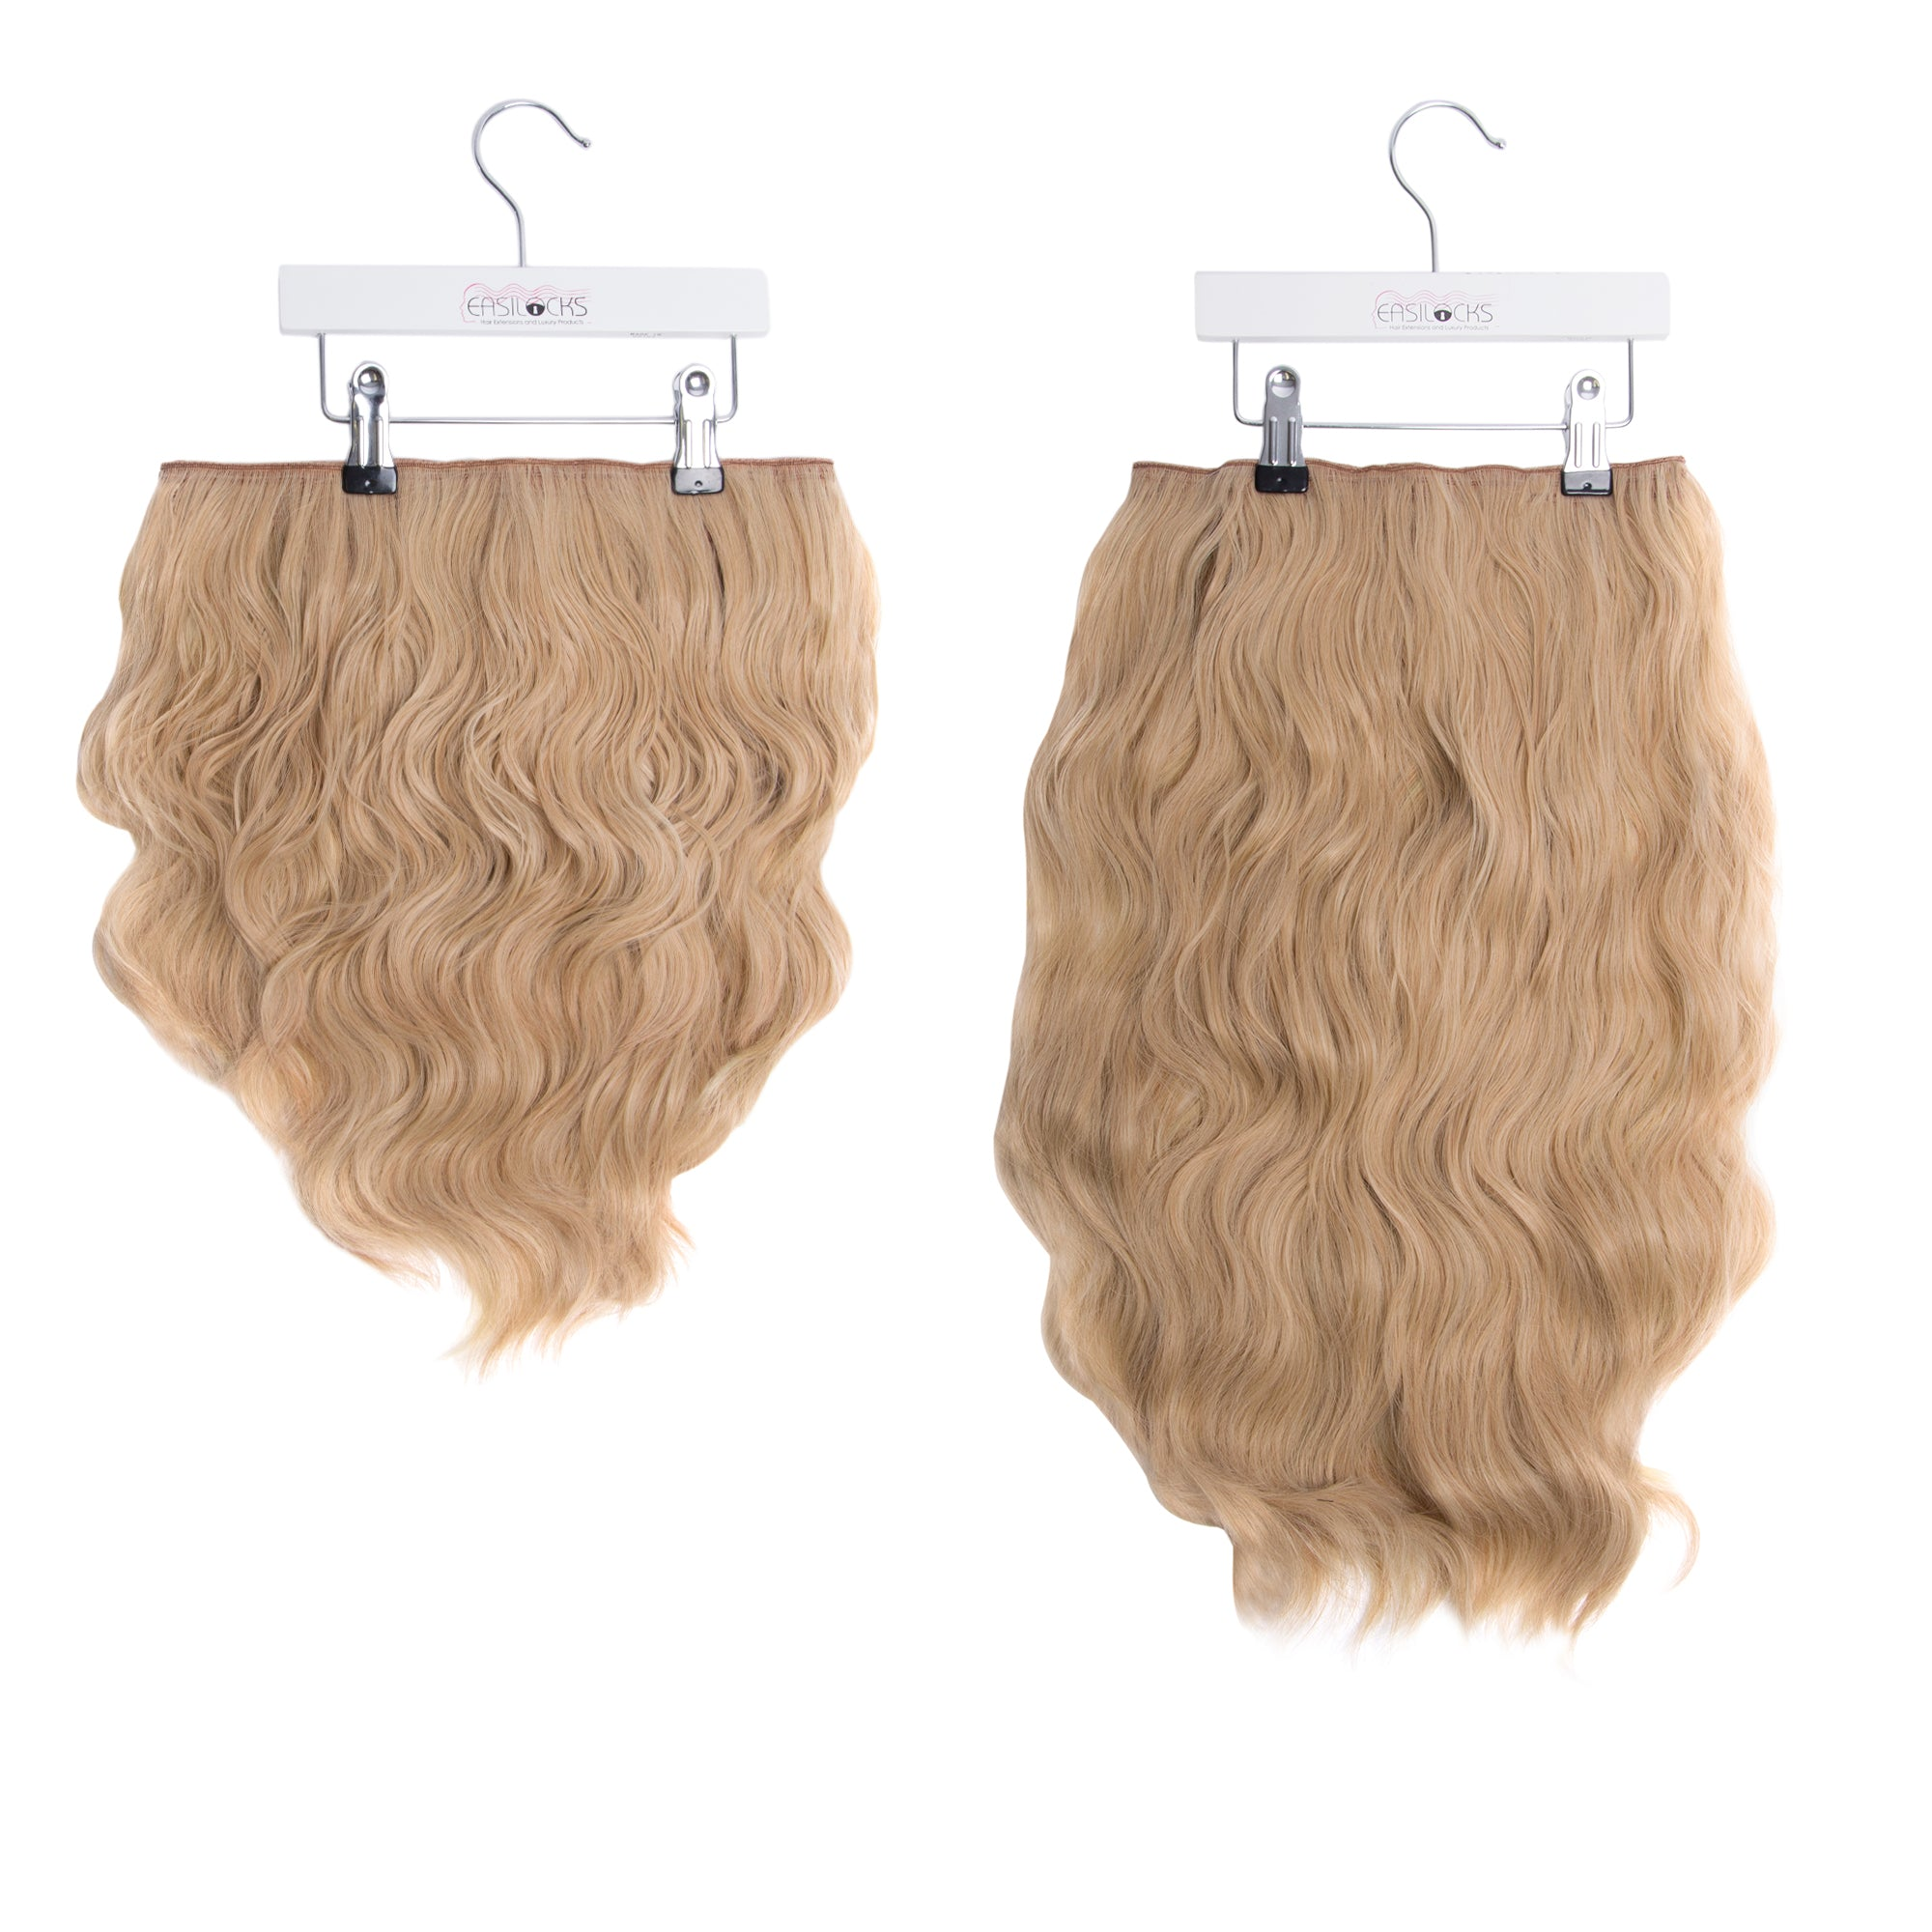 "Miracle Makeover HD Fibre Clip In Hair Extensions - 14"" & 22"" - Pure Blonde (1319149437008)"